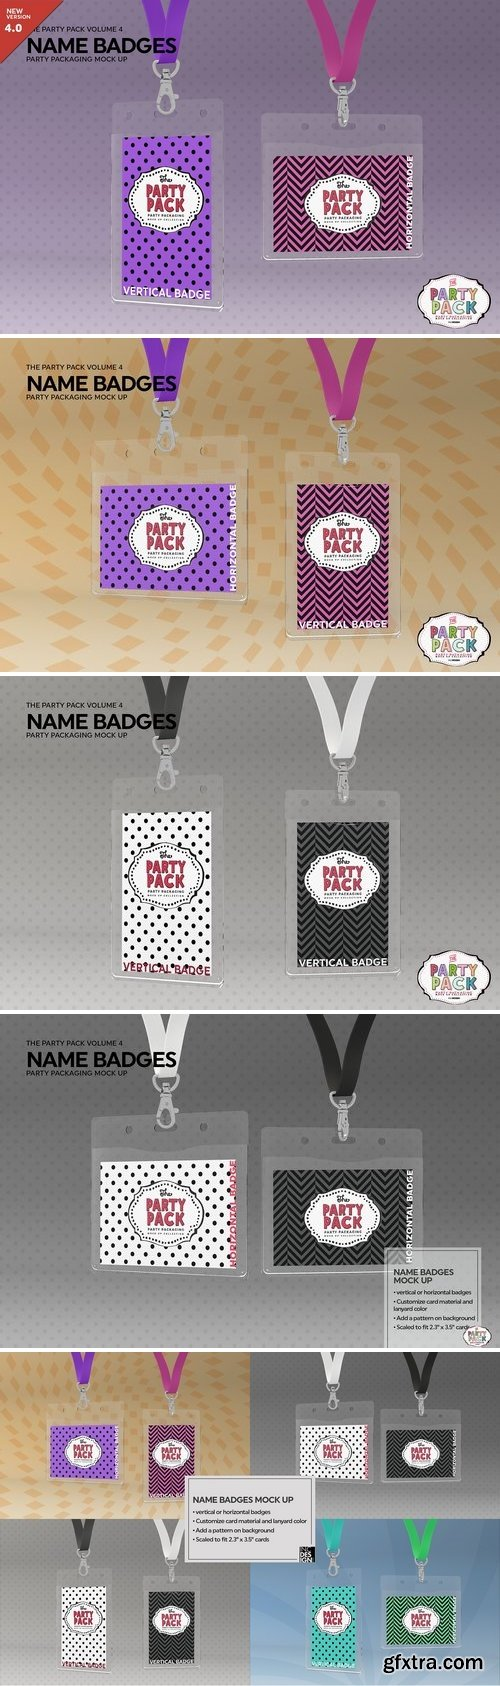 CM - Name Badges with Lanyards Mock Up 2199329